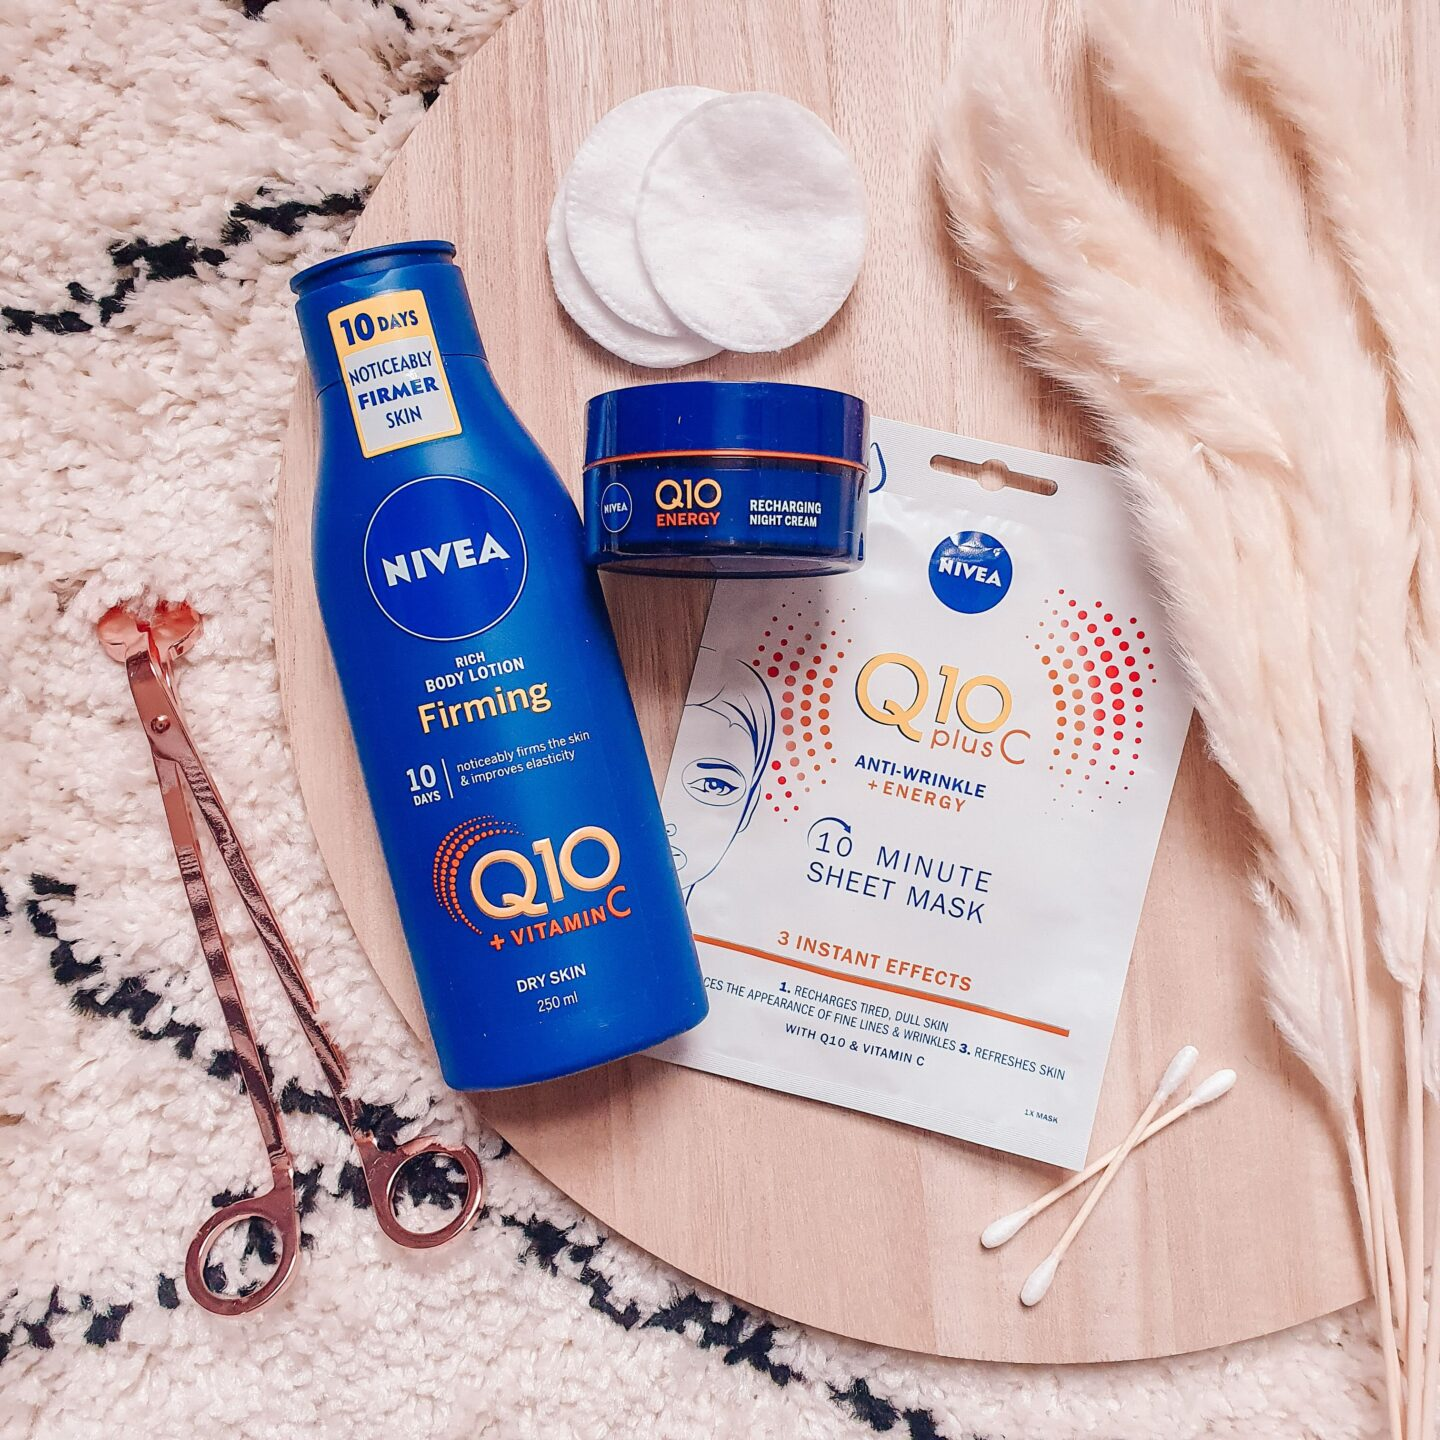 Nivea Q10 plus Vitamin C 10 Minute Sheet Mask and Firming Body Lotion for Dry Skin and Recharging Face Night Cream